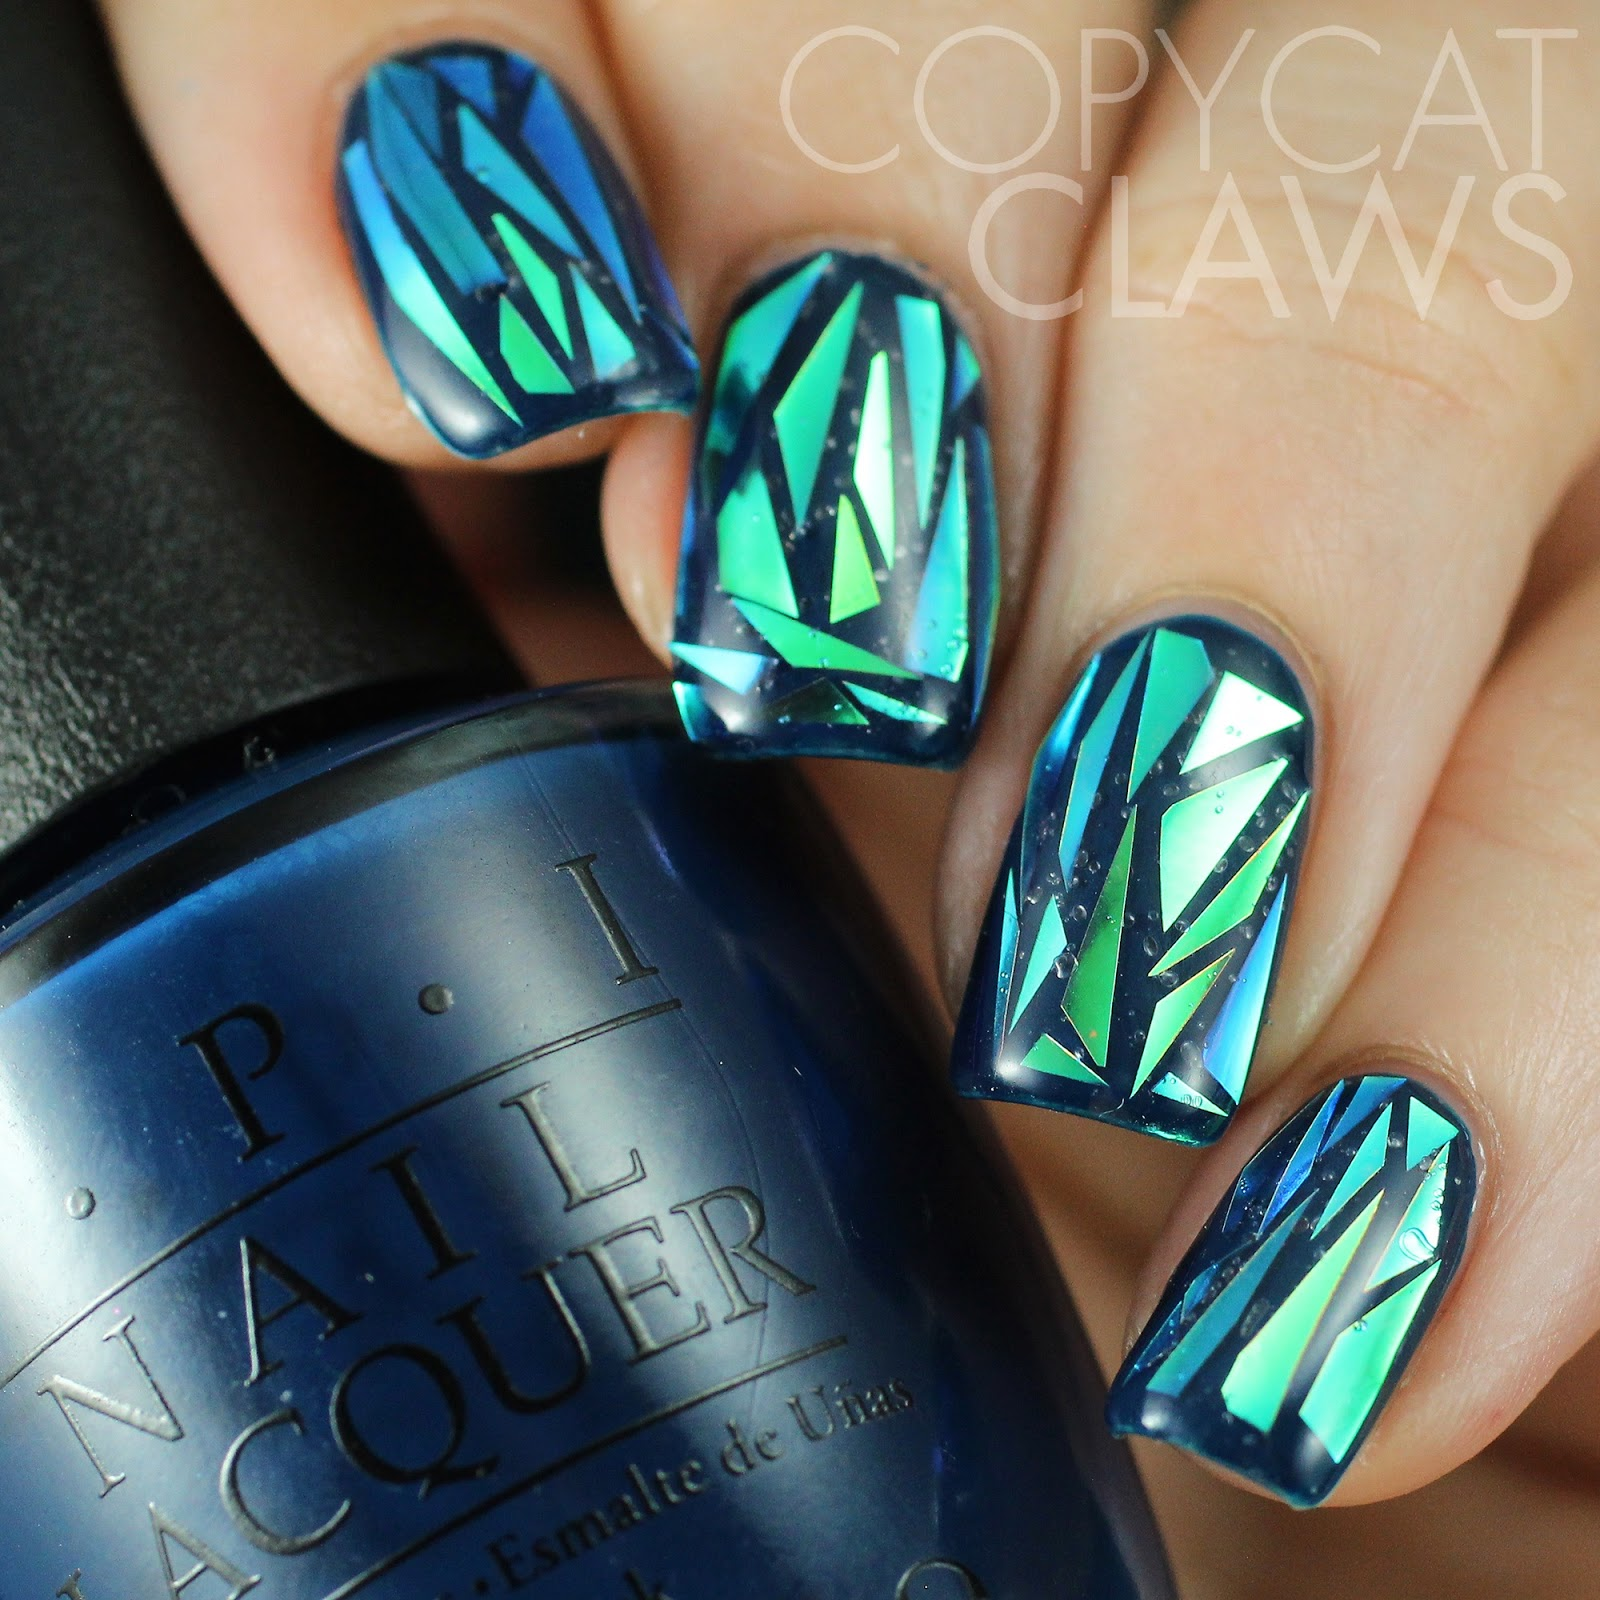 Copycat Claws: My Attempt At Shattered Glass Nails